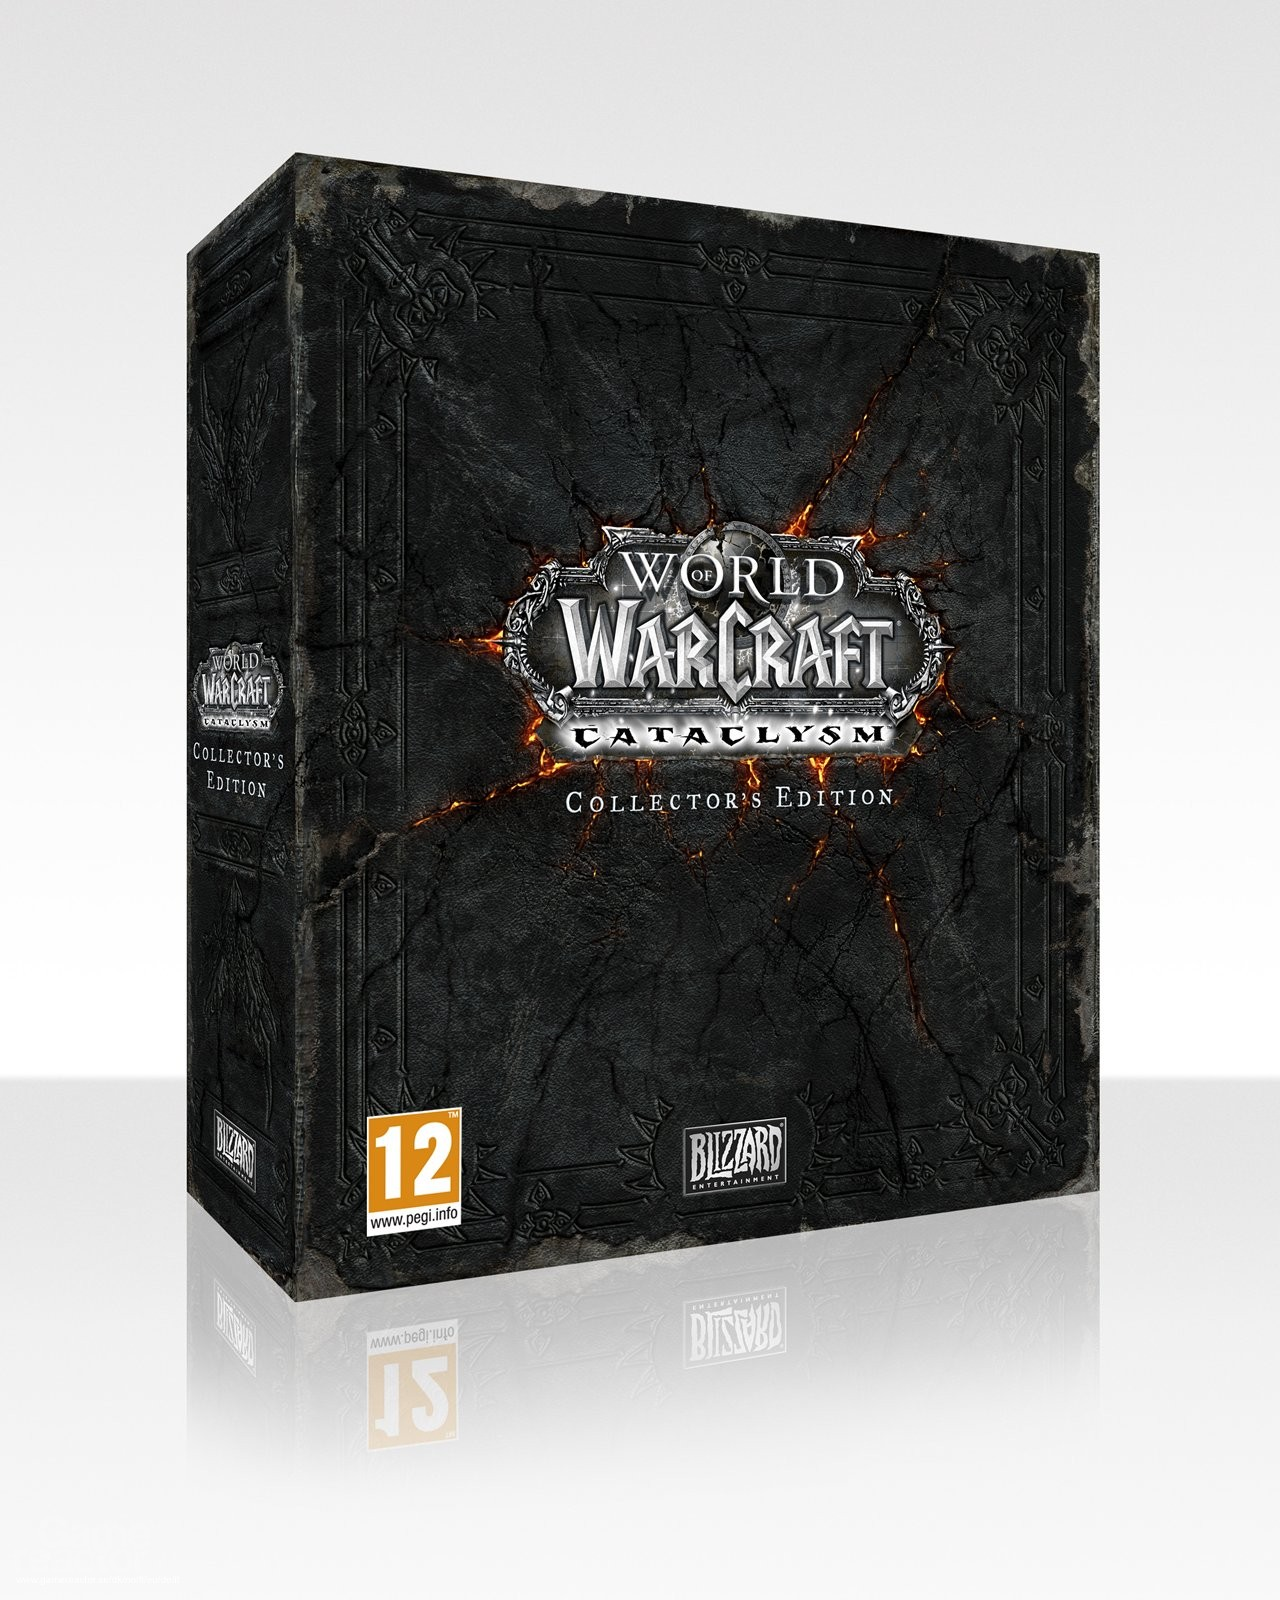 World of warcraft ports nackt thumbs